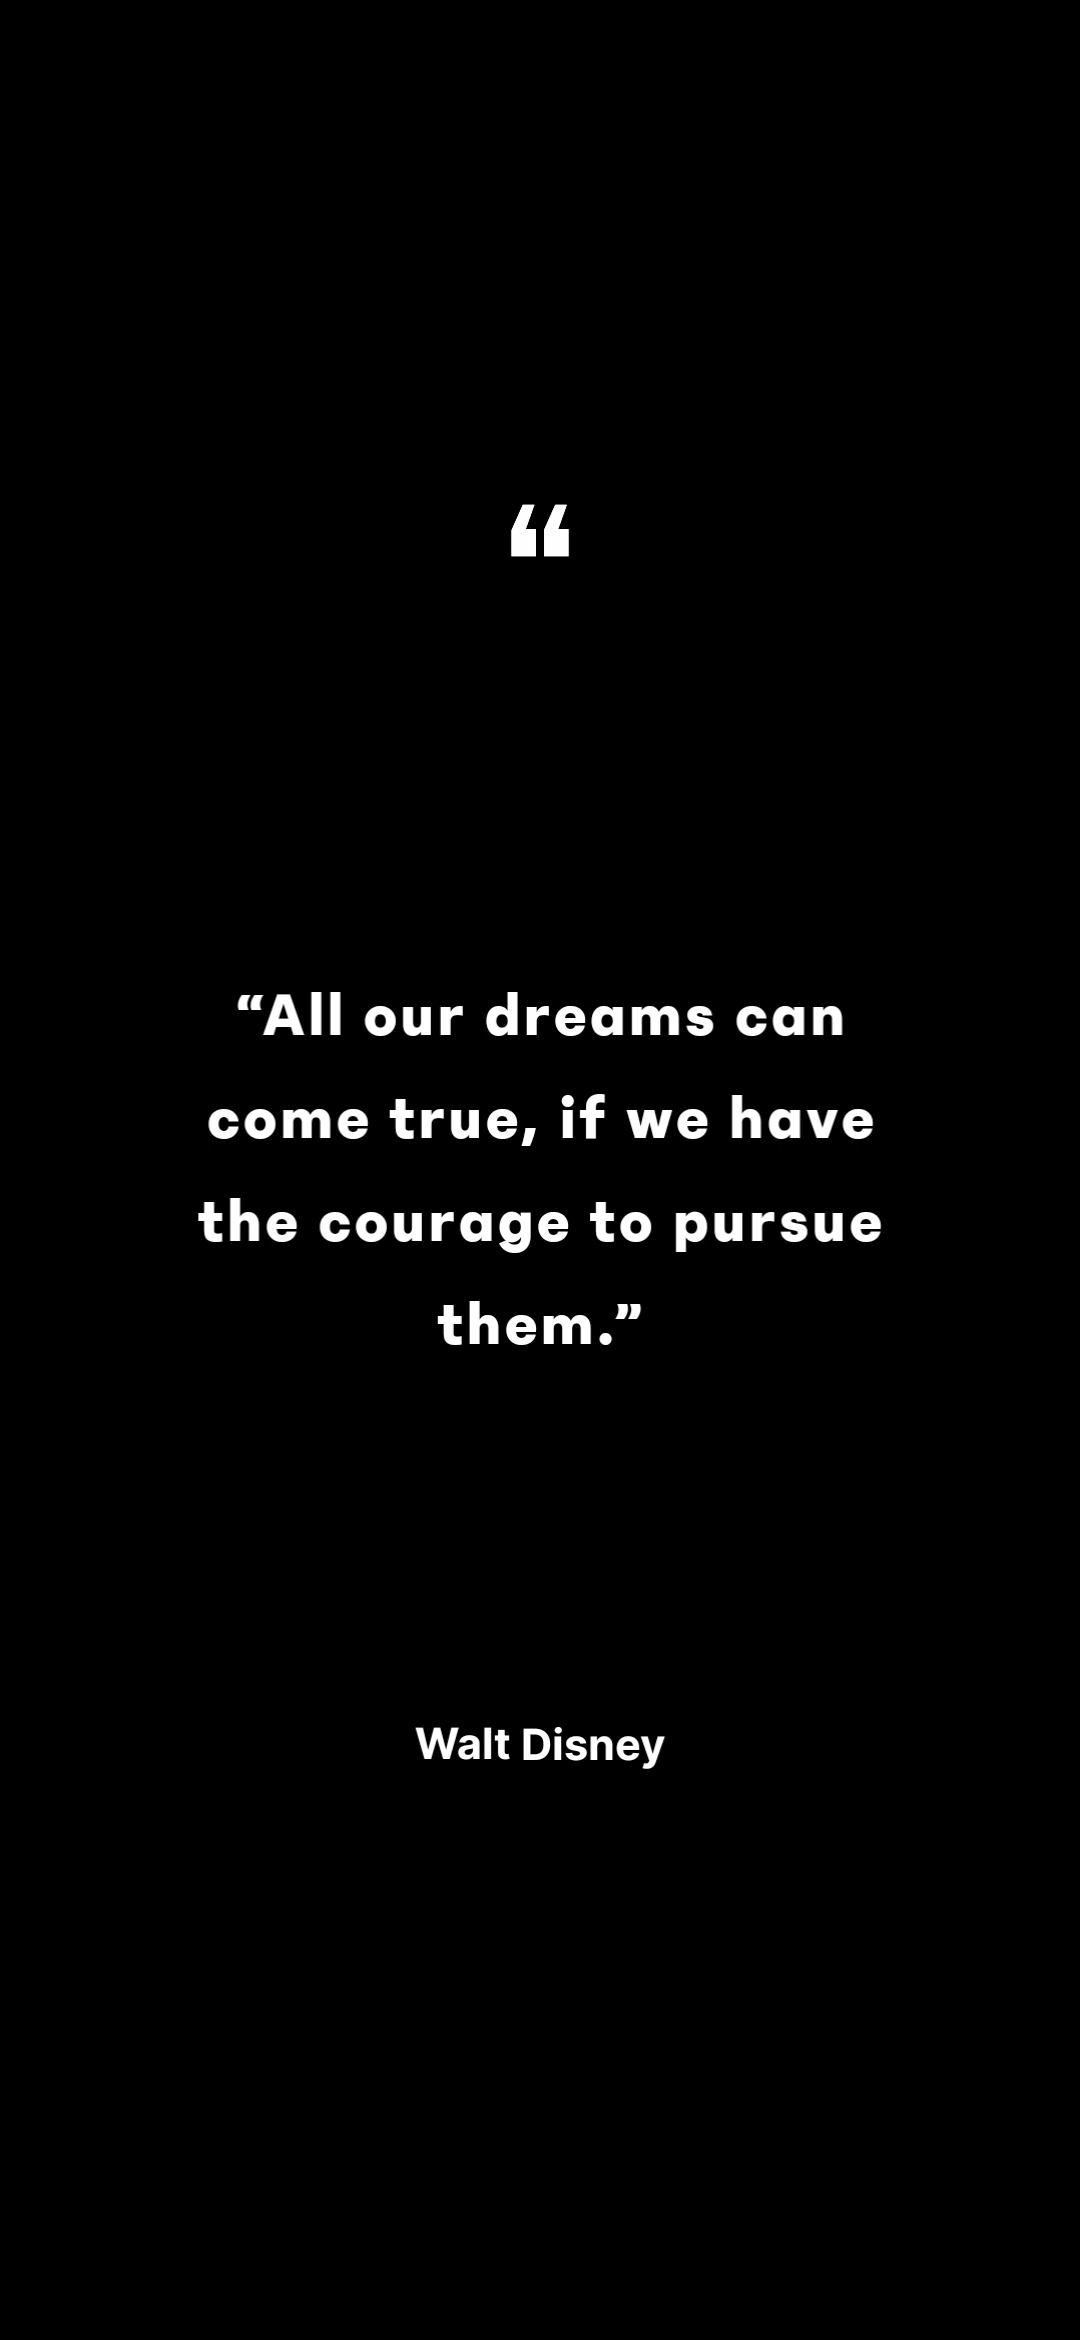 """All our dreams can come true, if we have the courage to pursue them"" – Walt Disney (1080x2340px)"